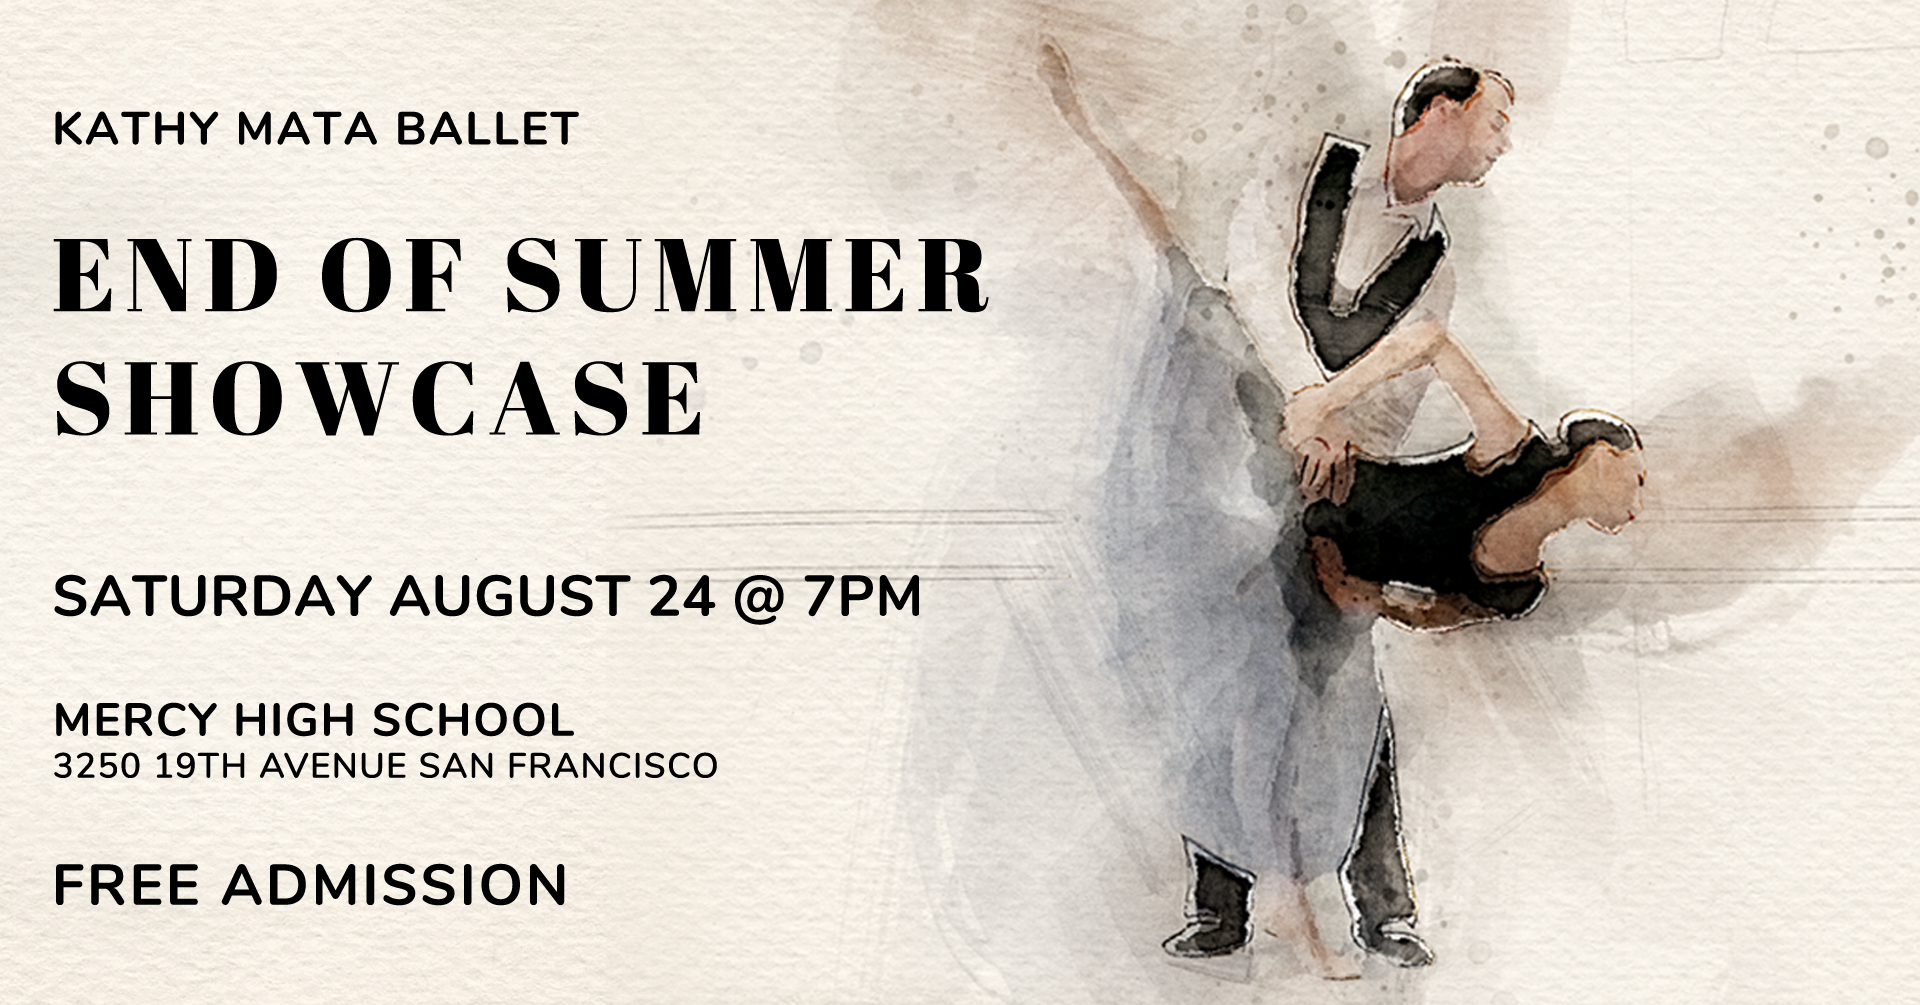 Kathy Mata Ballet End of Summer Showcase 2019